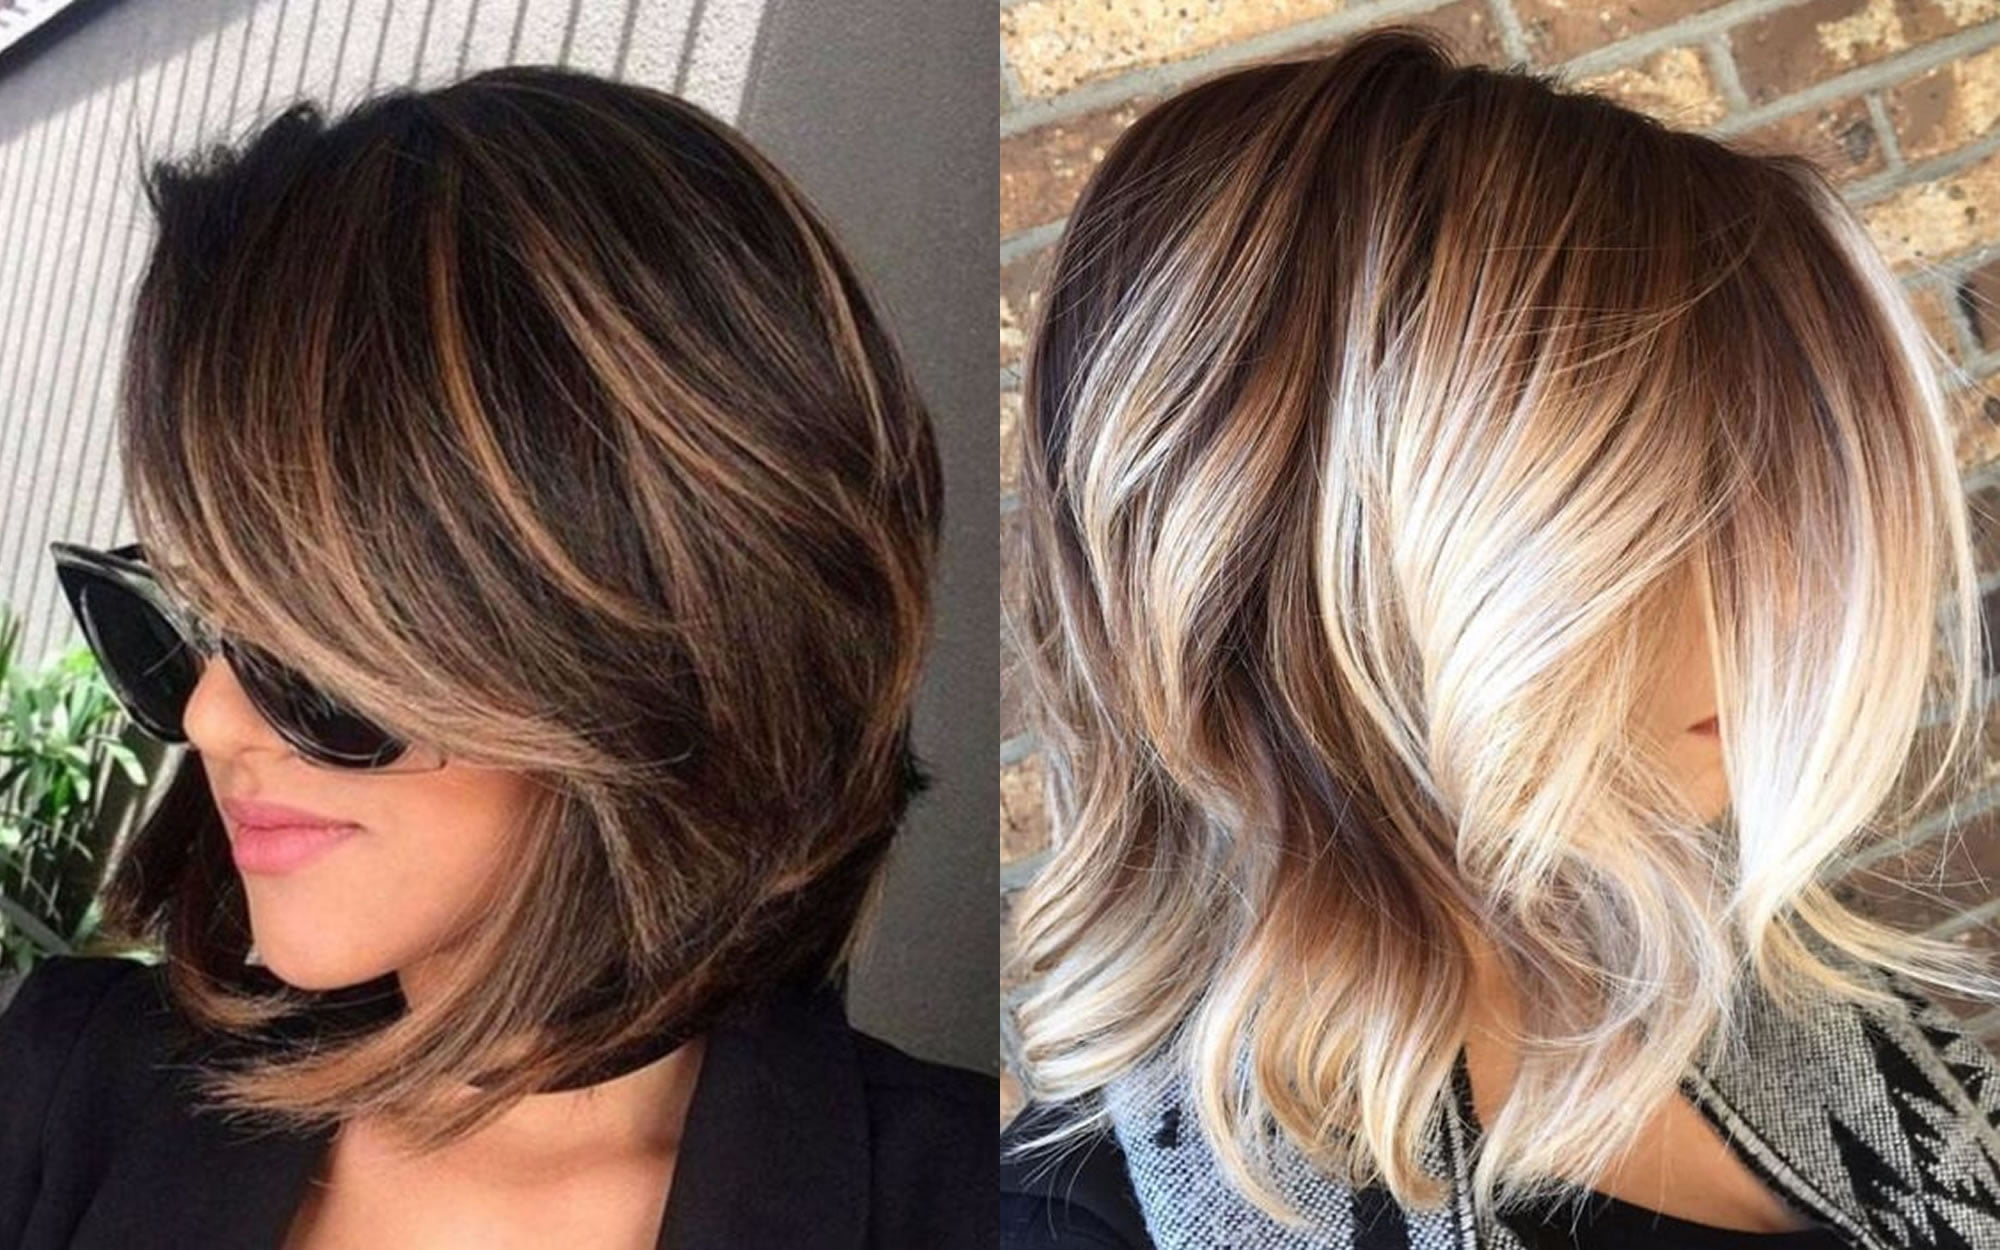 2018 Hairstyle For Dark Hair Color: Balayage Short + Long Bob Highlights